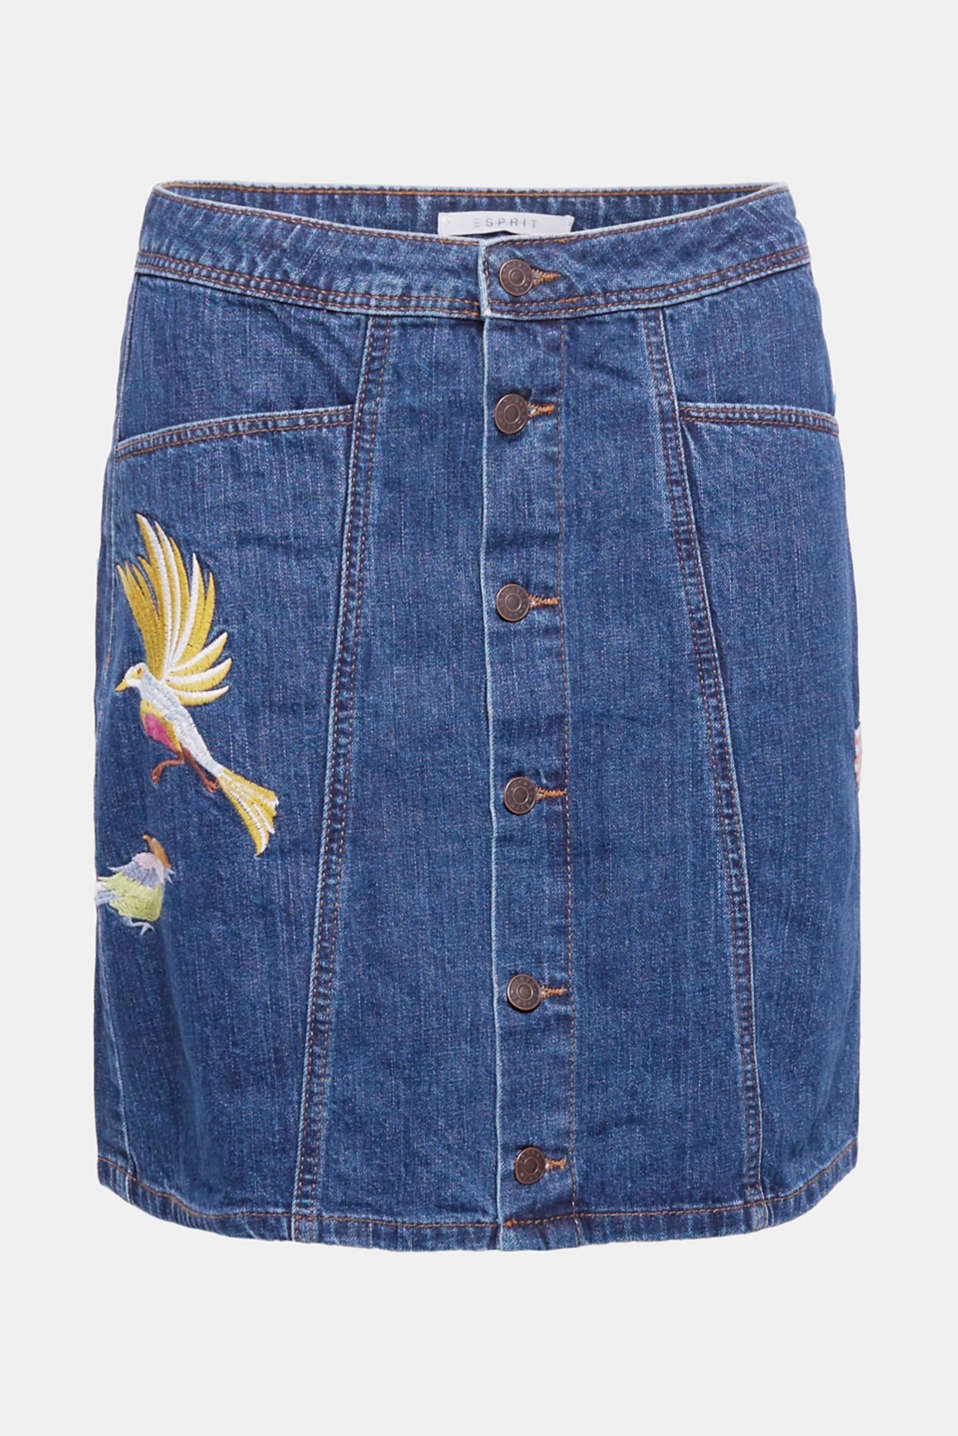 Must-have: This summer belongs to denim, skirts and colourful embroidery! And this great piece has them all!